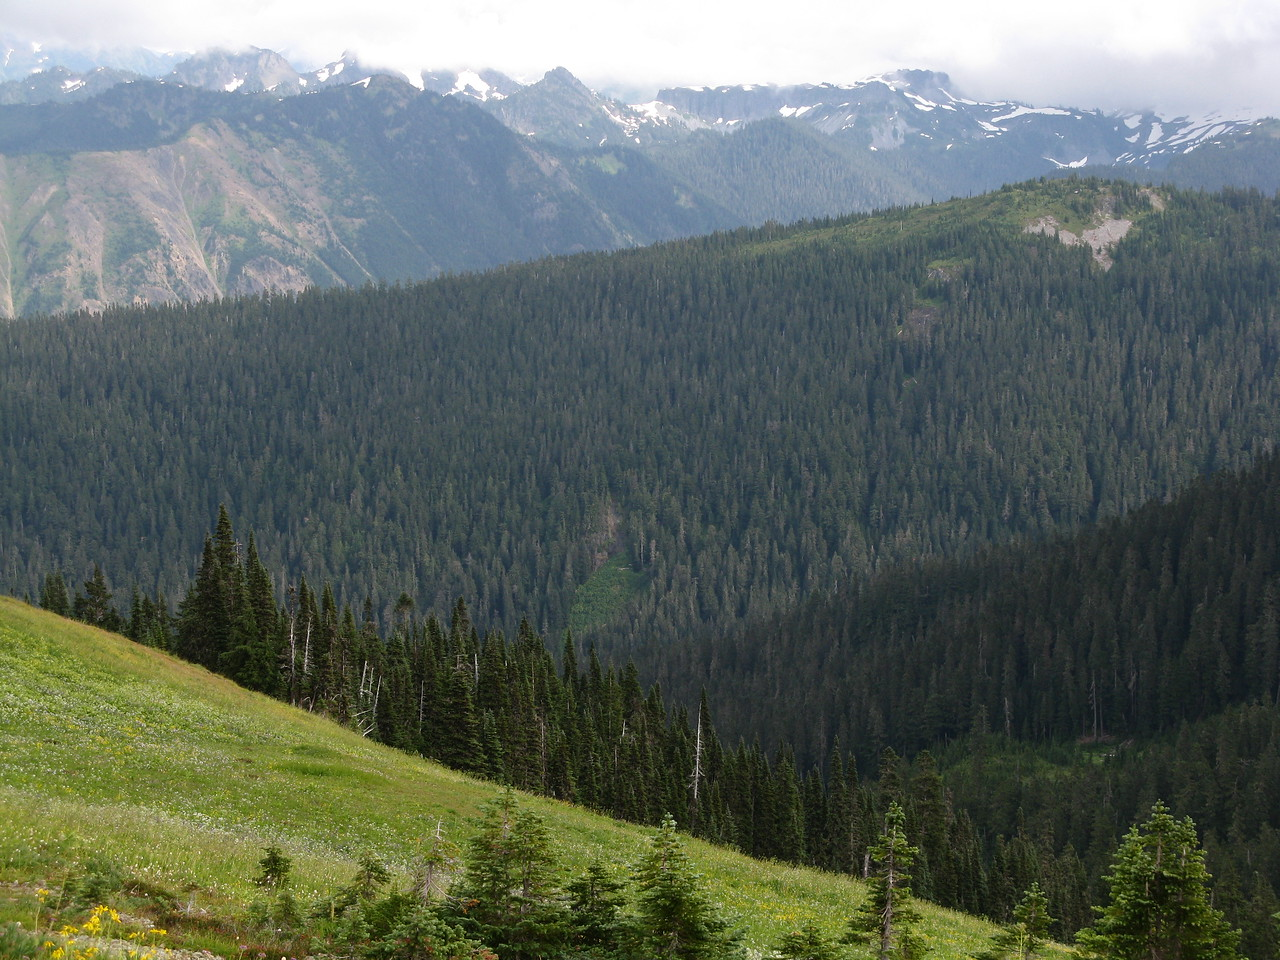 The mountain in the middle distance is coverd with evergreen forest.